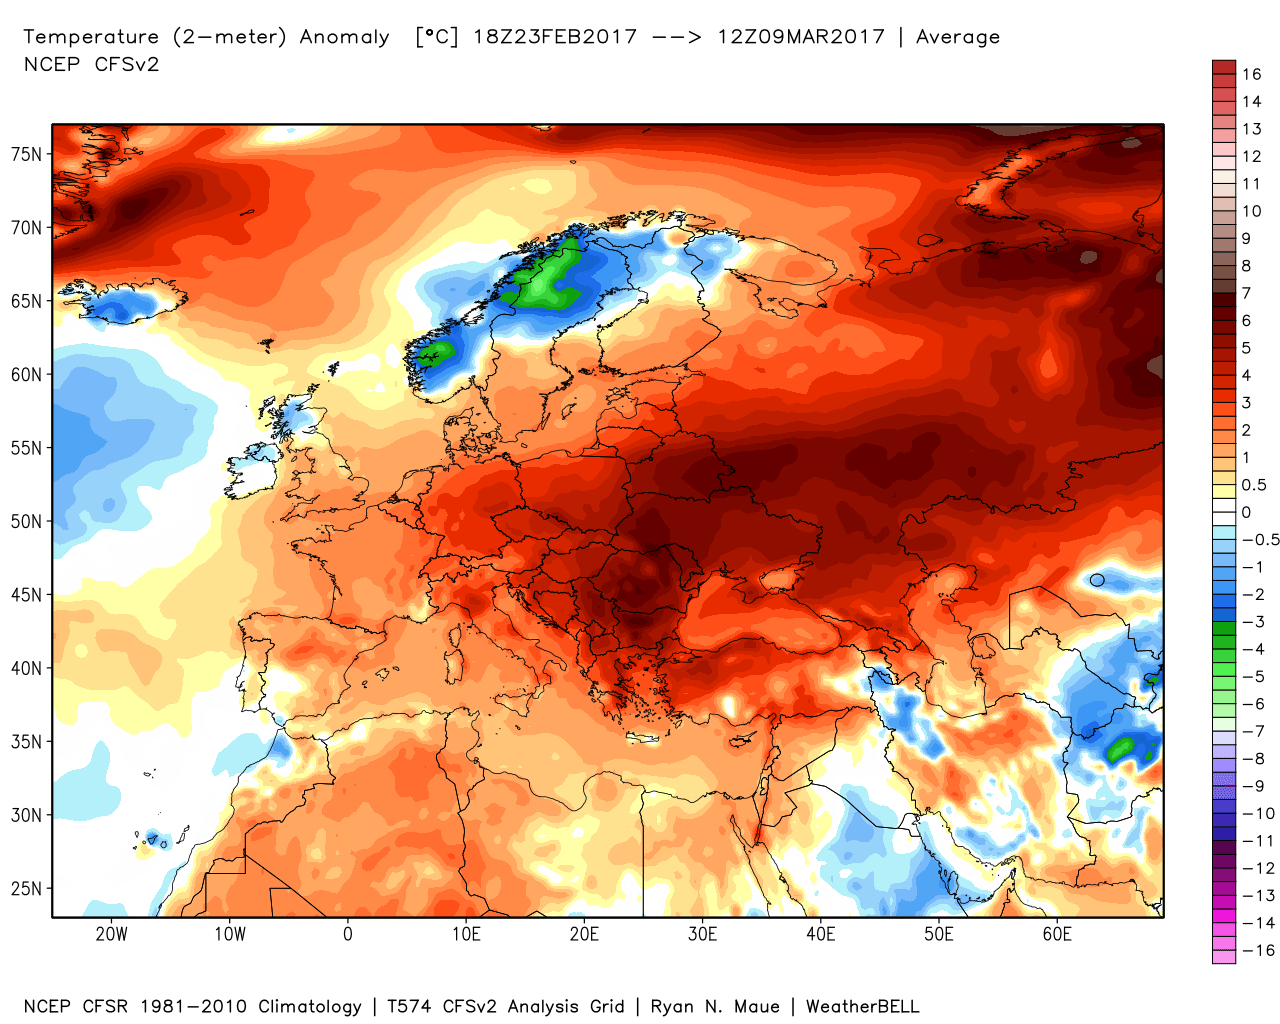 Tendenza Stagionale Primavera 2017-ncep_cfsr_europe_t2m_2weeks_anom.png